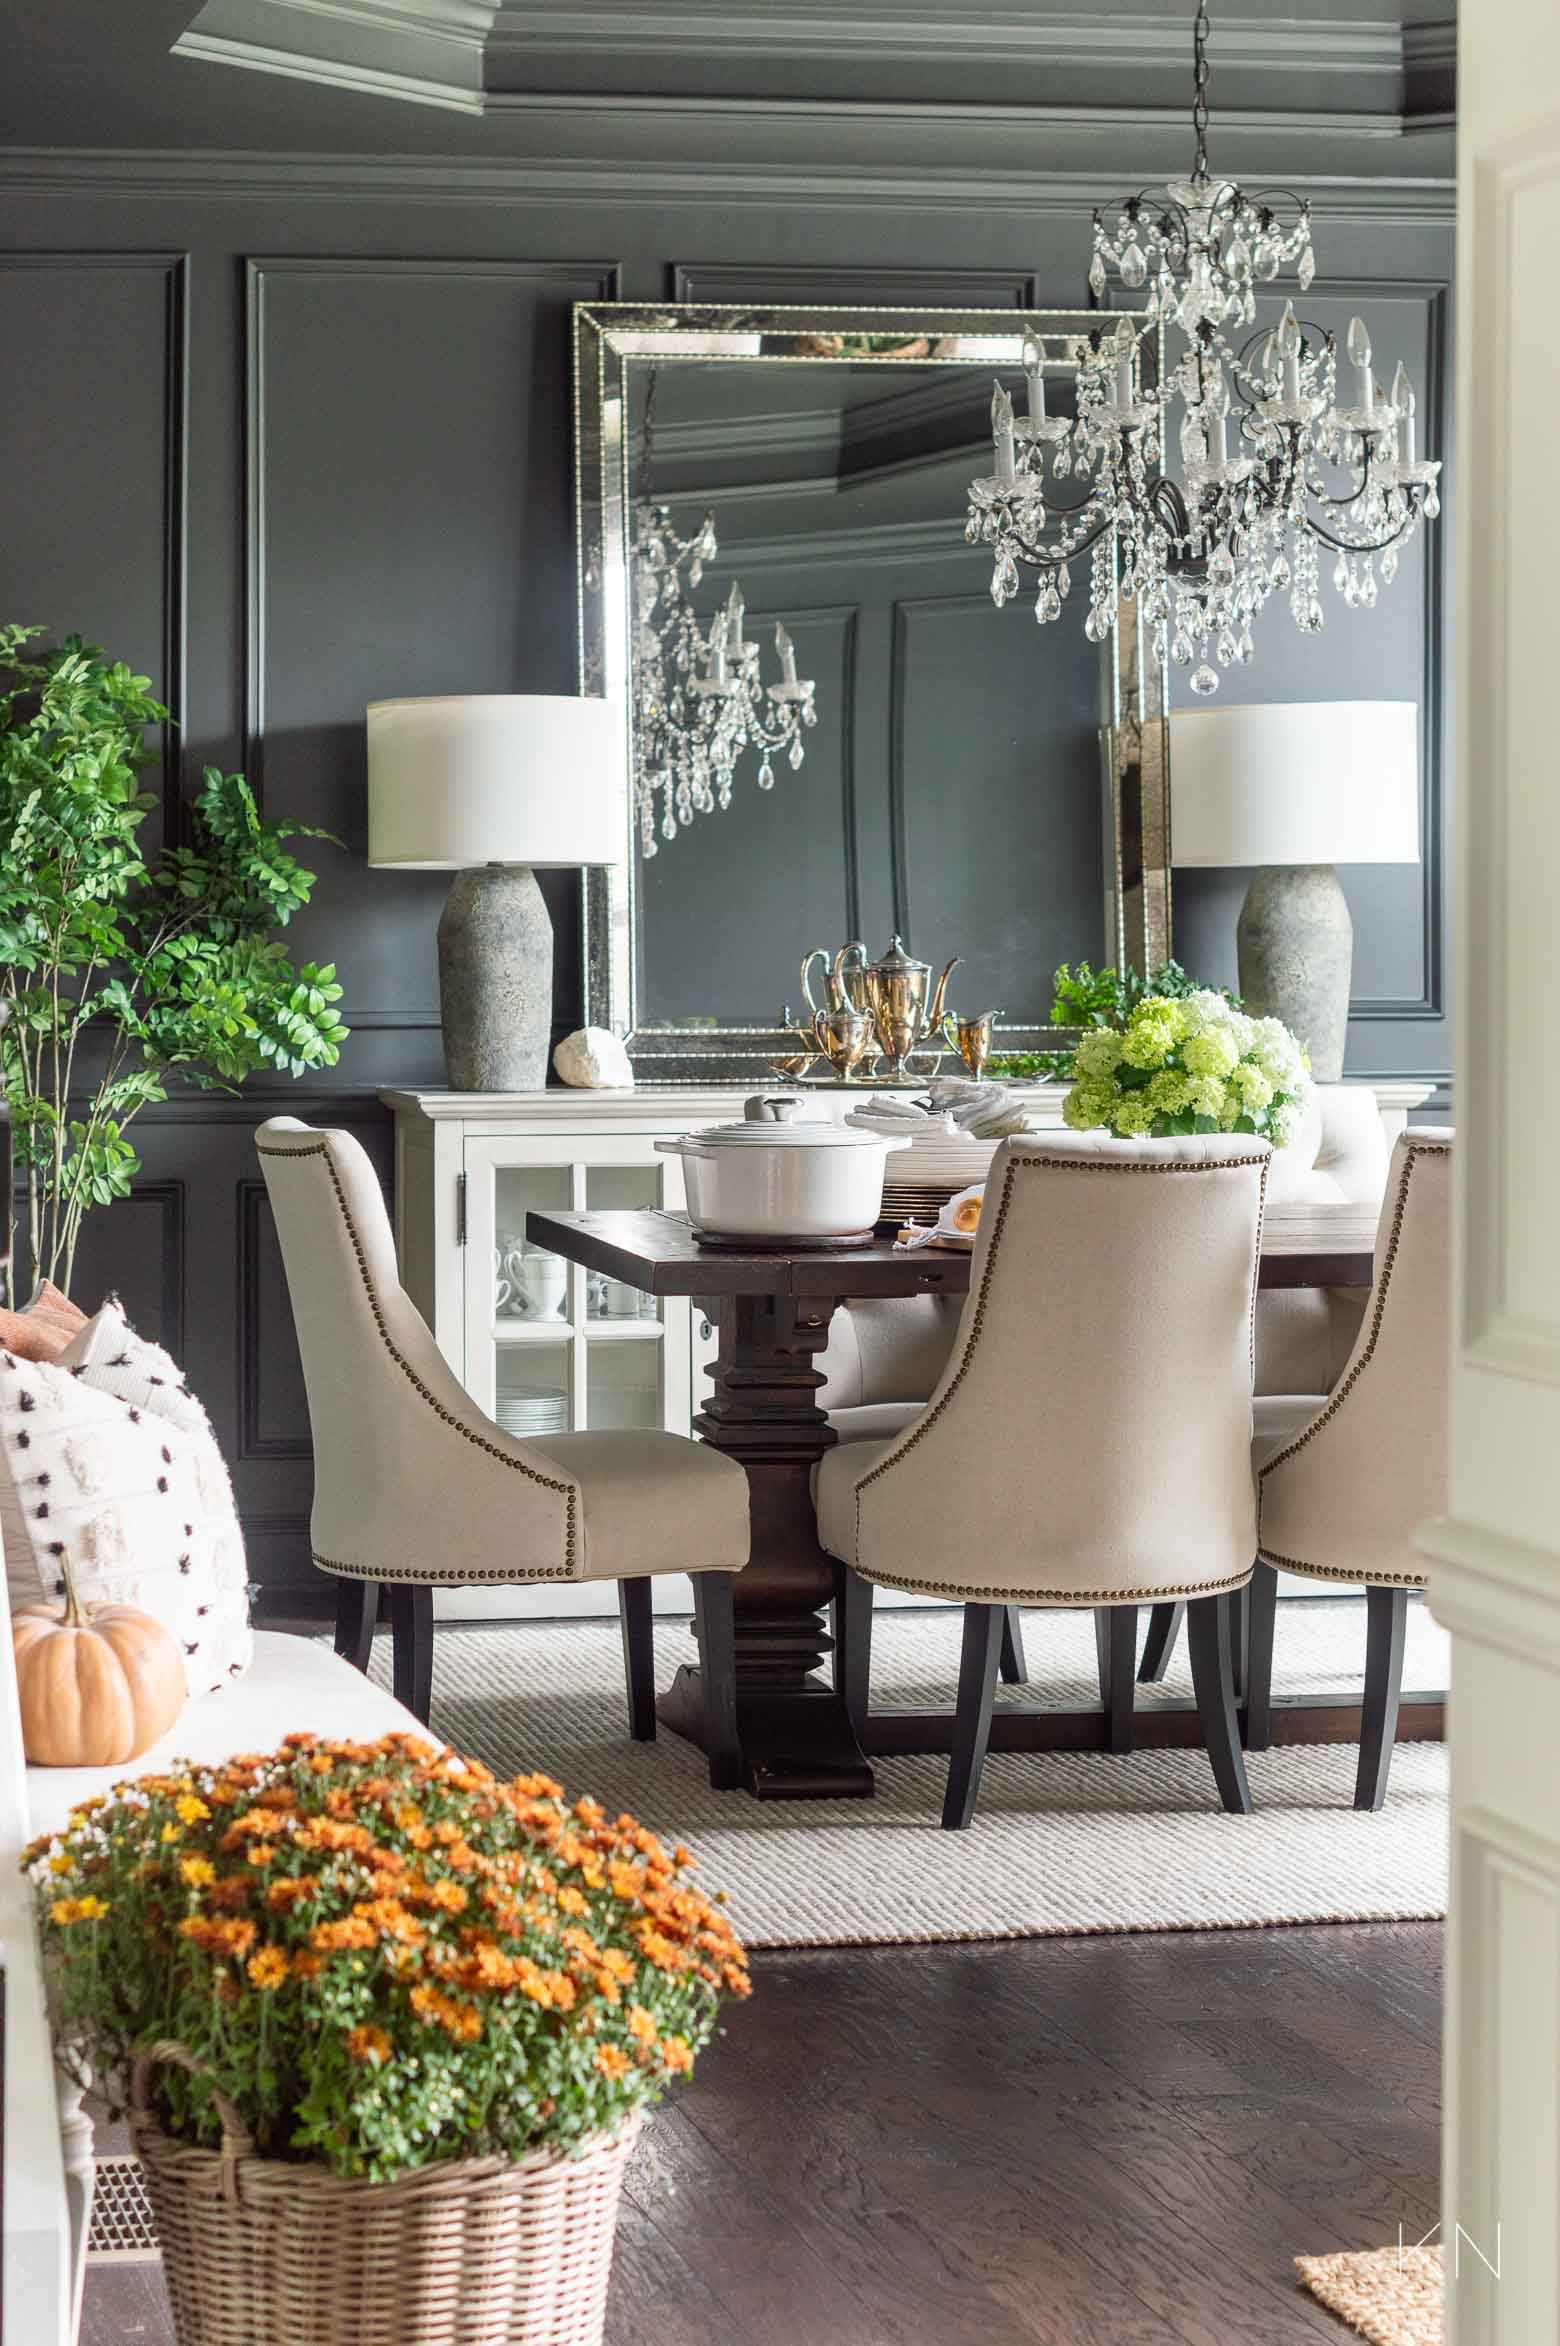 Fall Dining Room with Pot Roast for Family Dinner